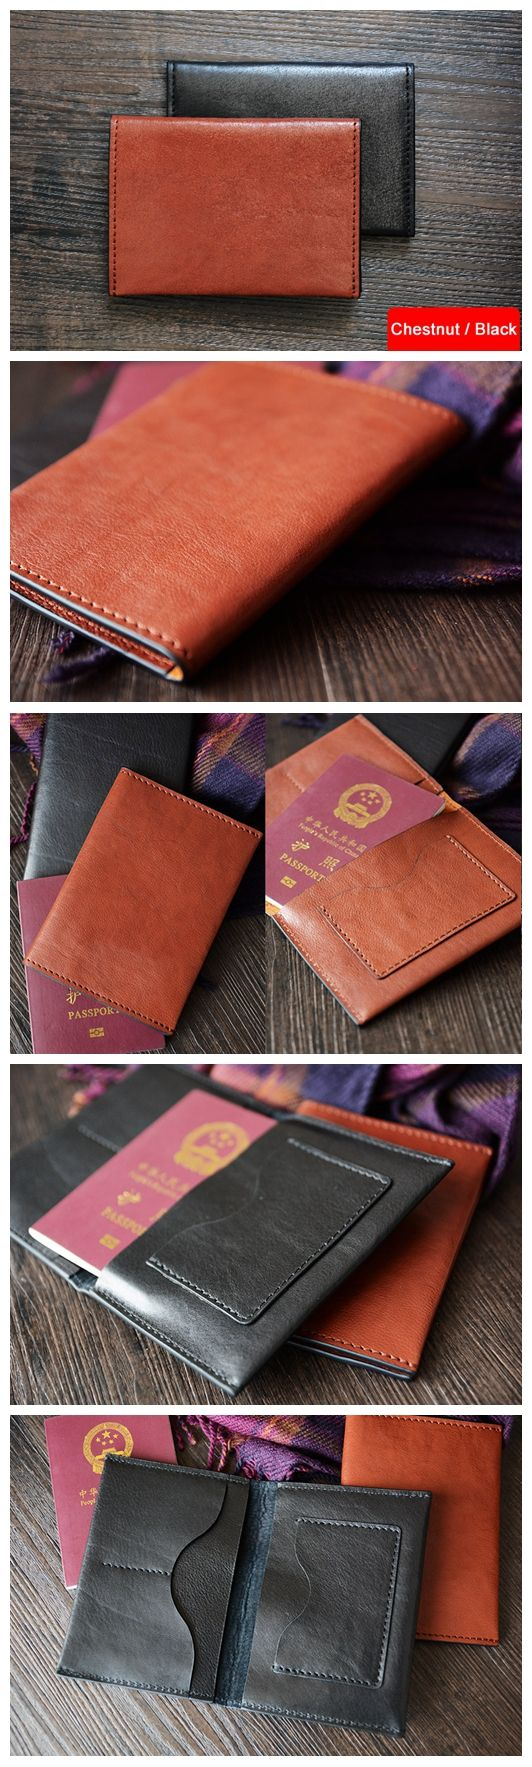 286 Best Wallets Images On Pinterest Wallets Leather Craft And